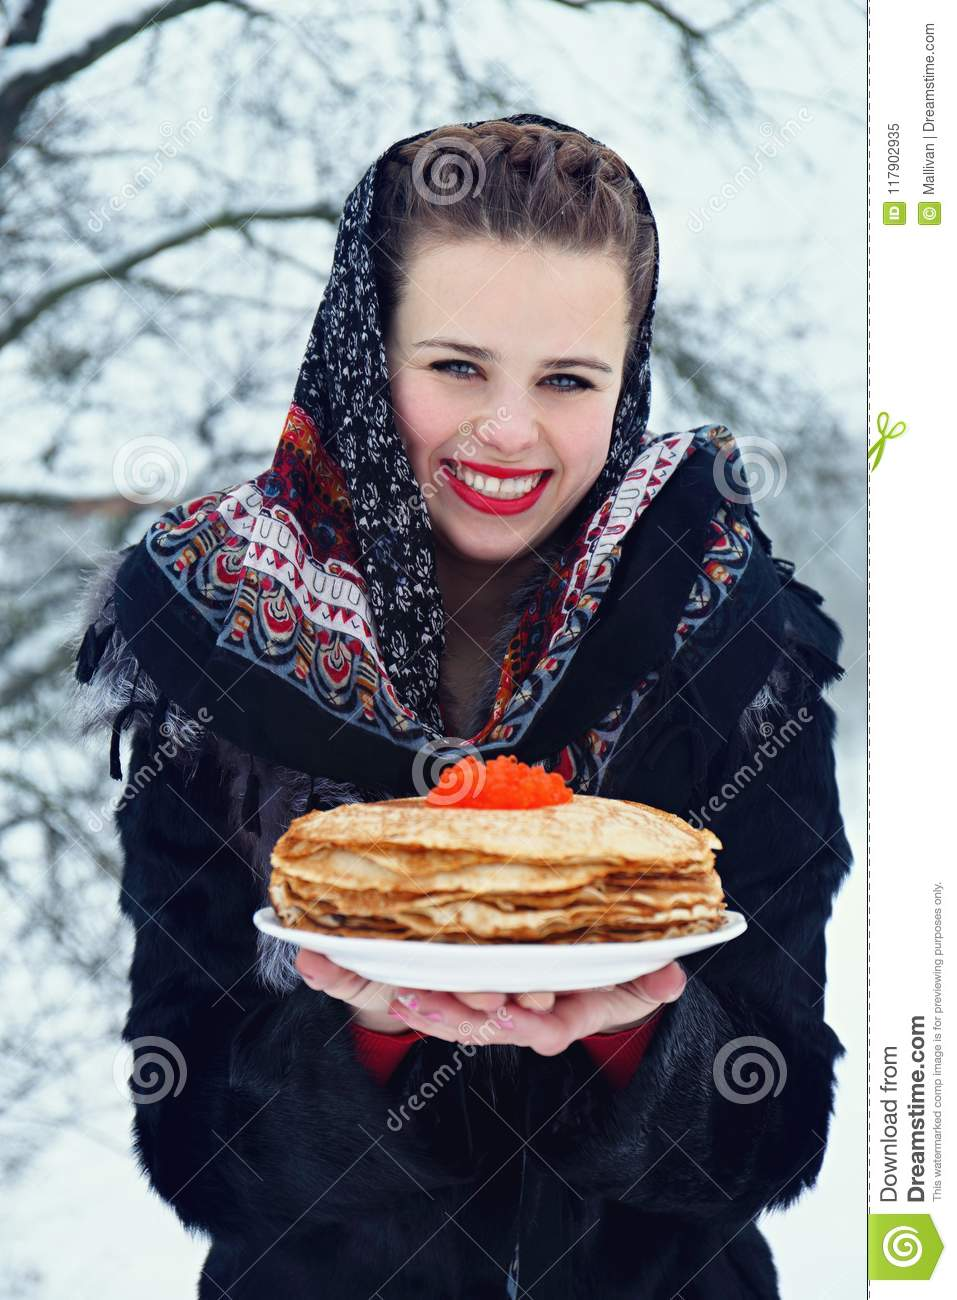 Woman with a plate of pancakes